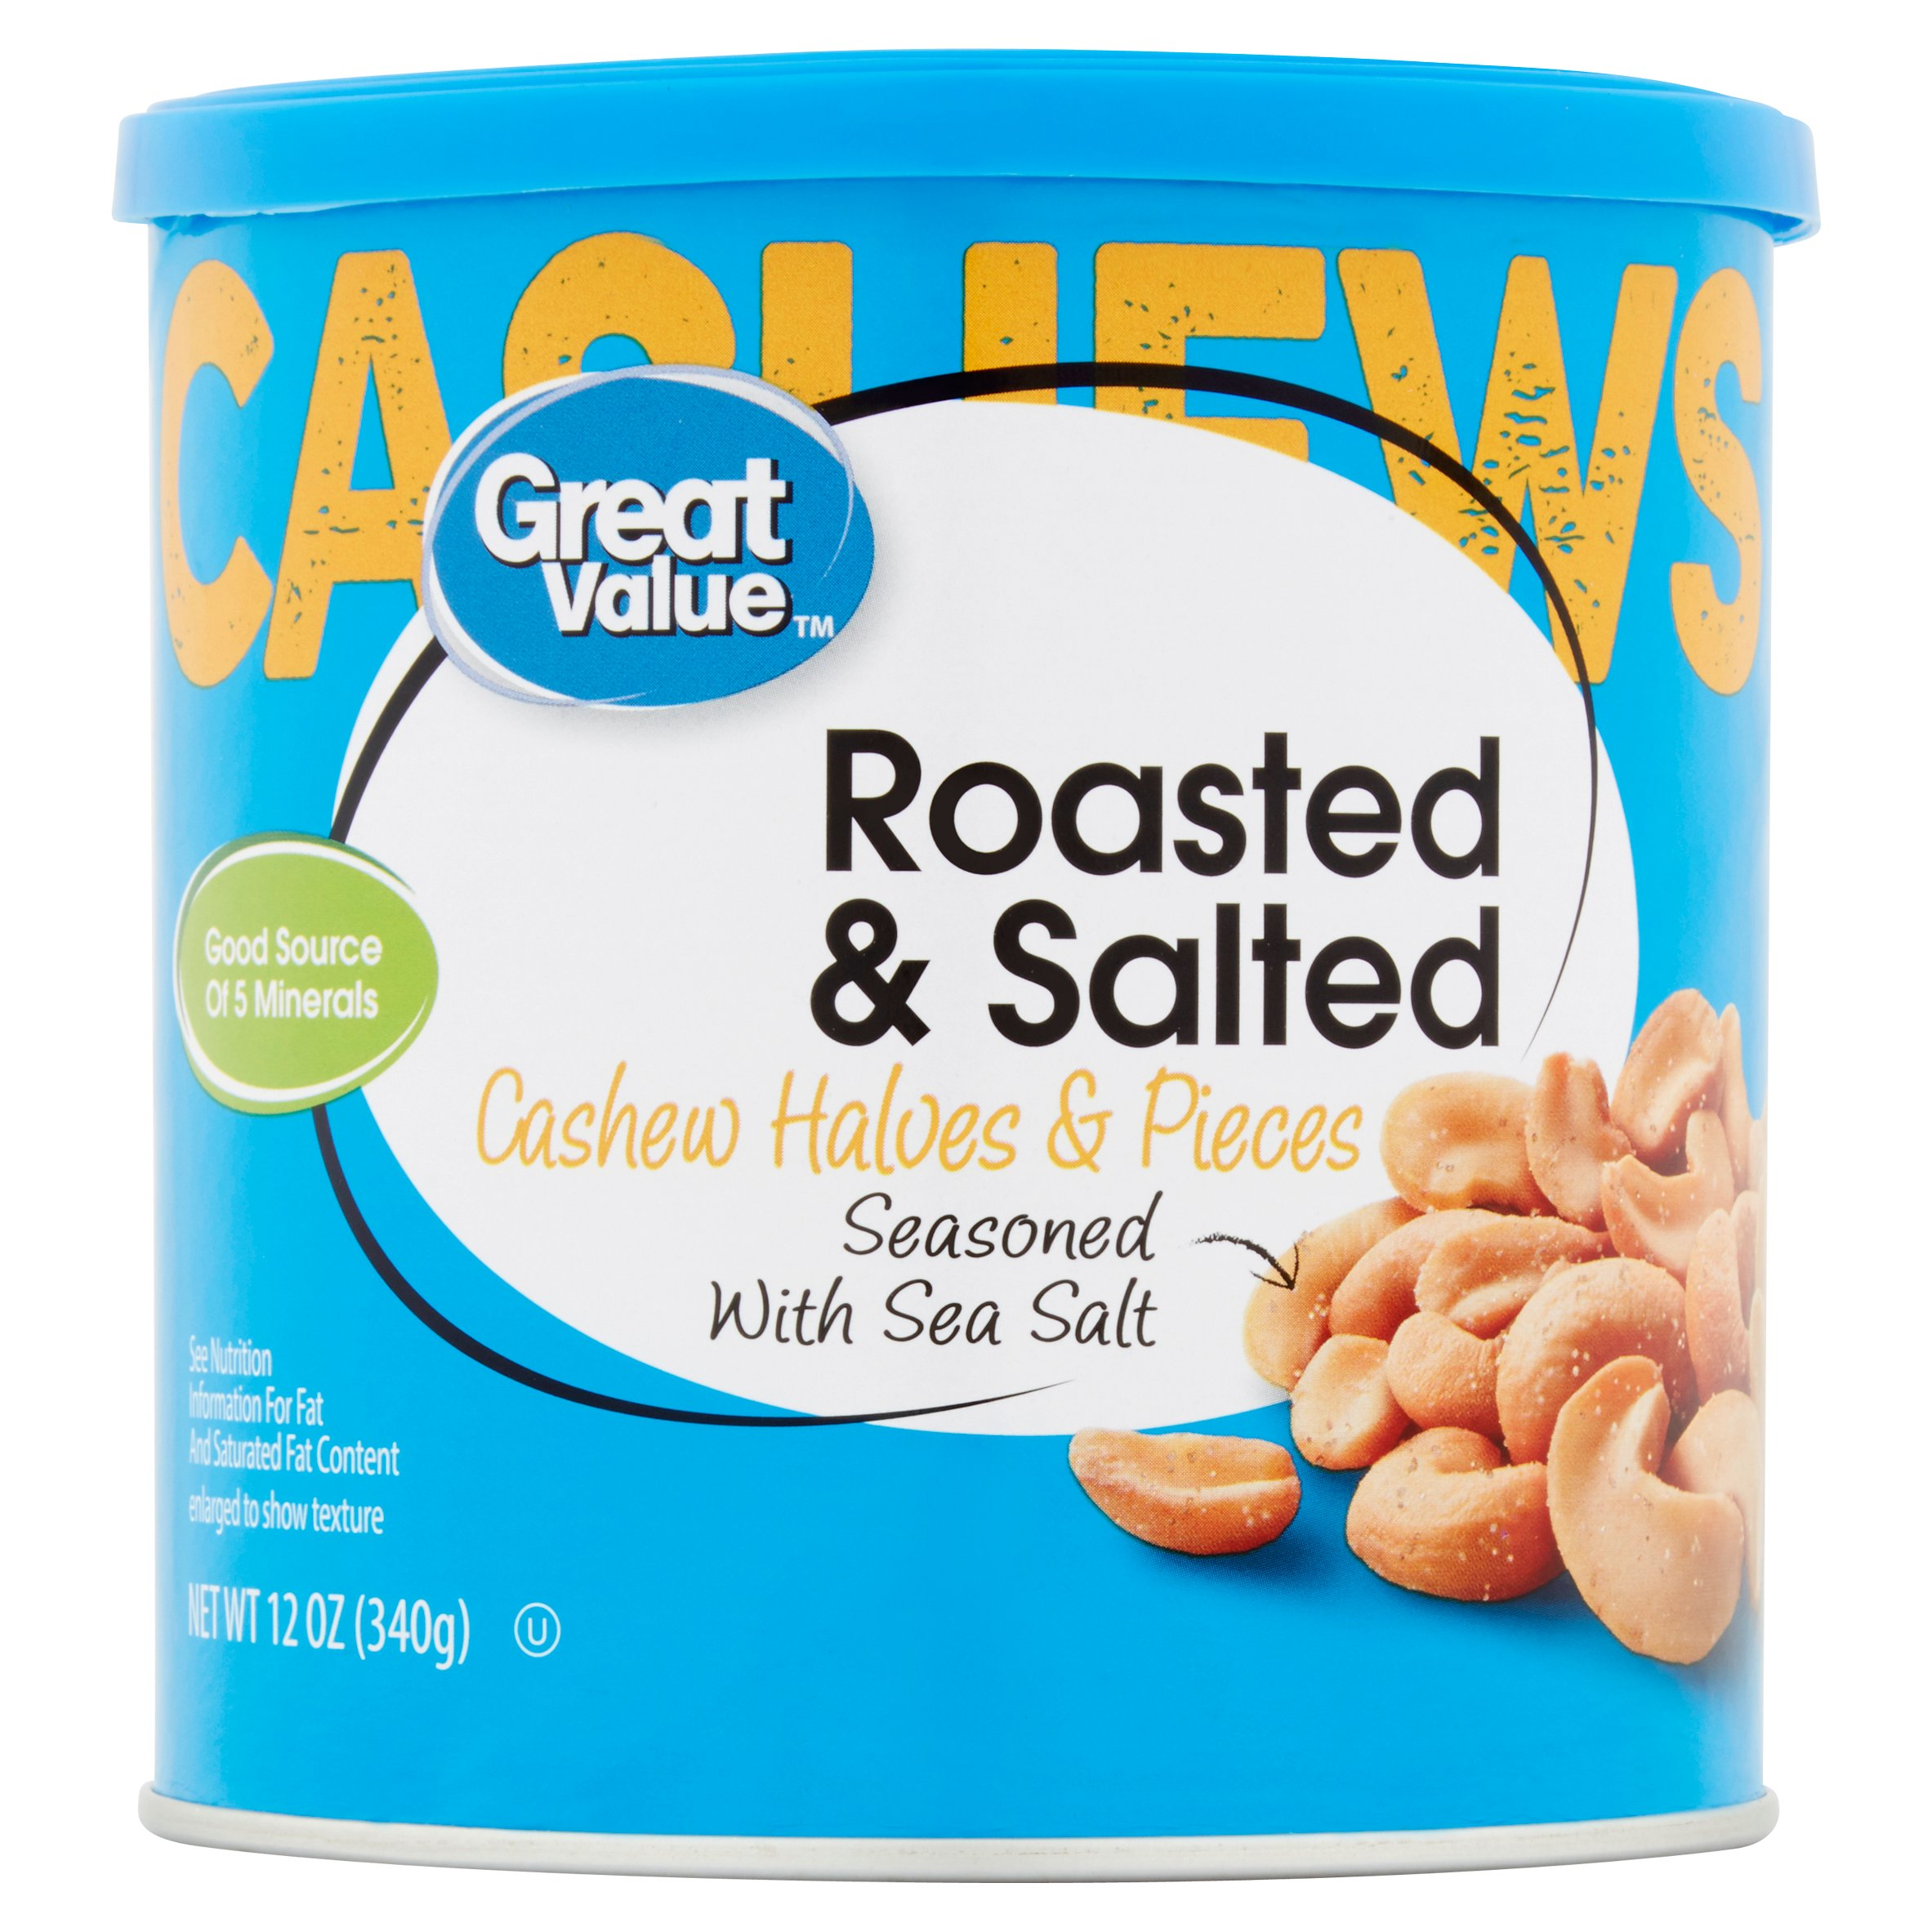 Great Value Cashew Halves & Pieces, Roasted & Salted, 12 oz